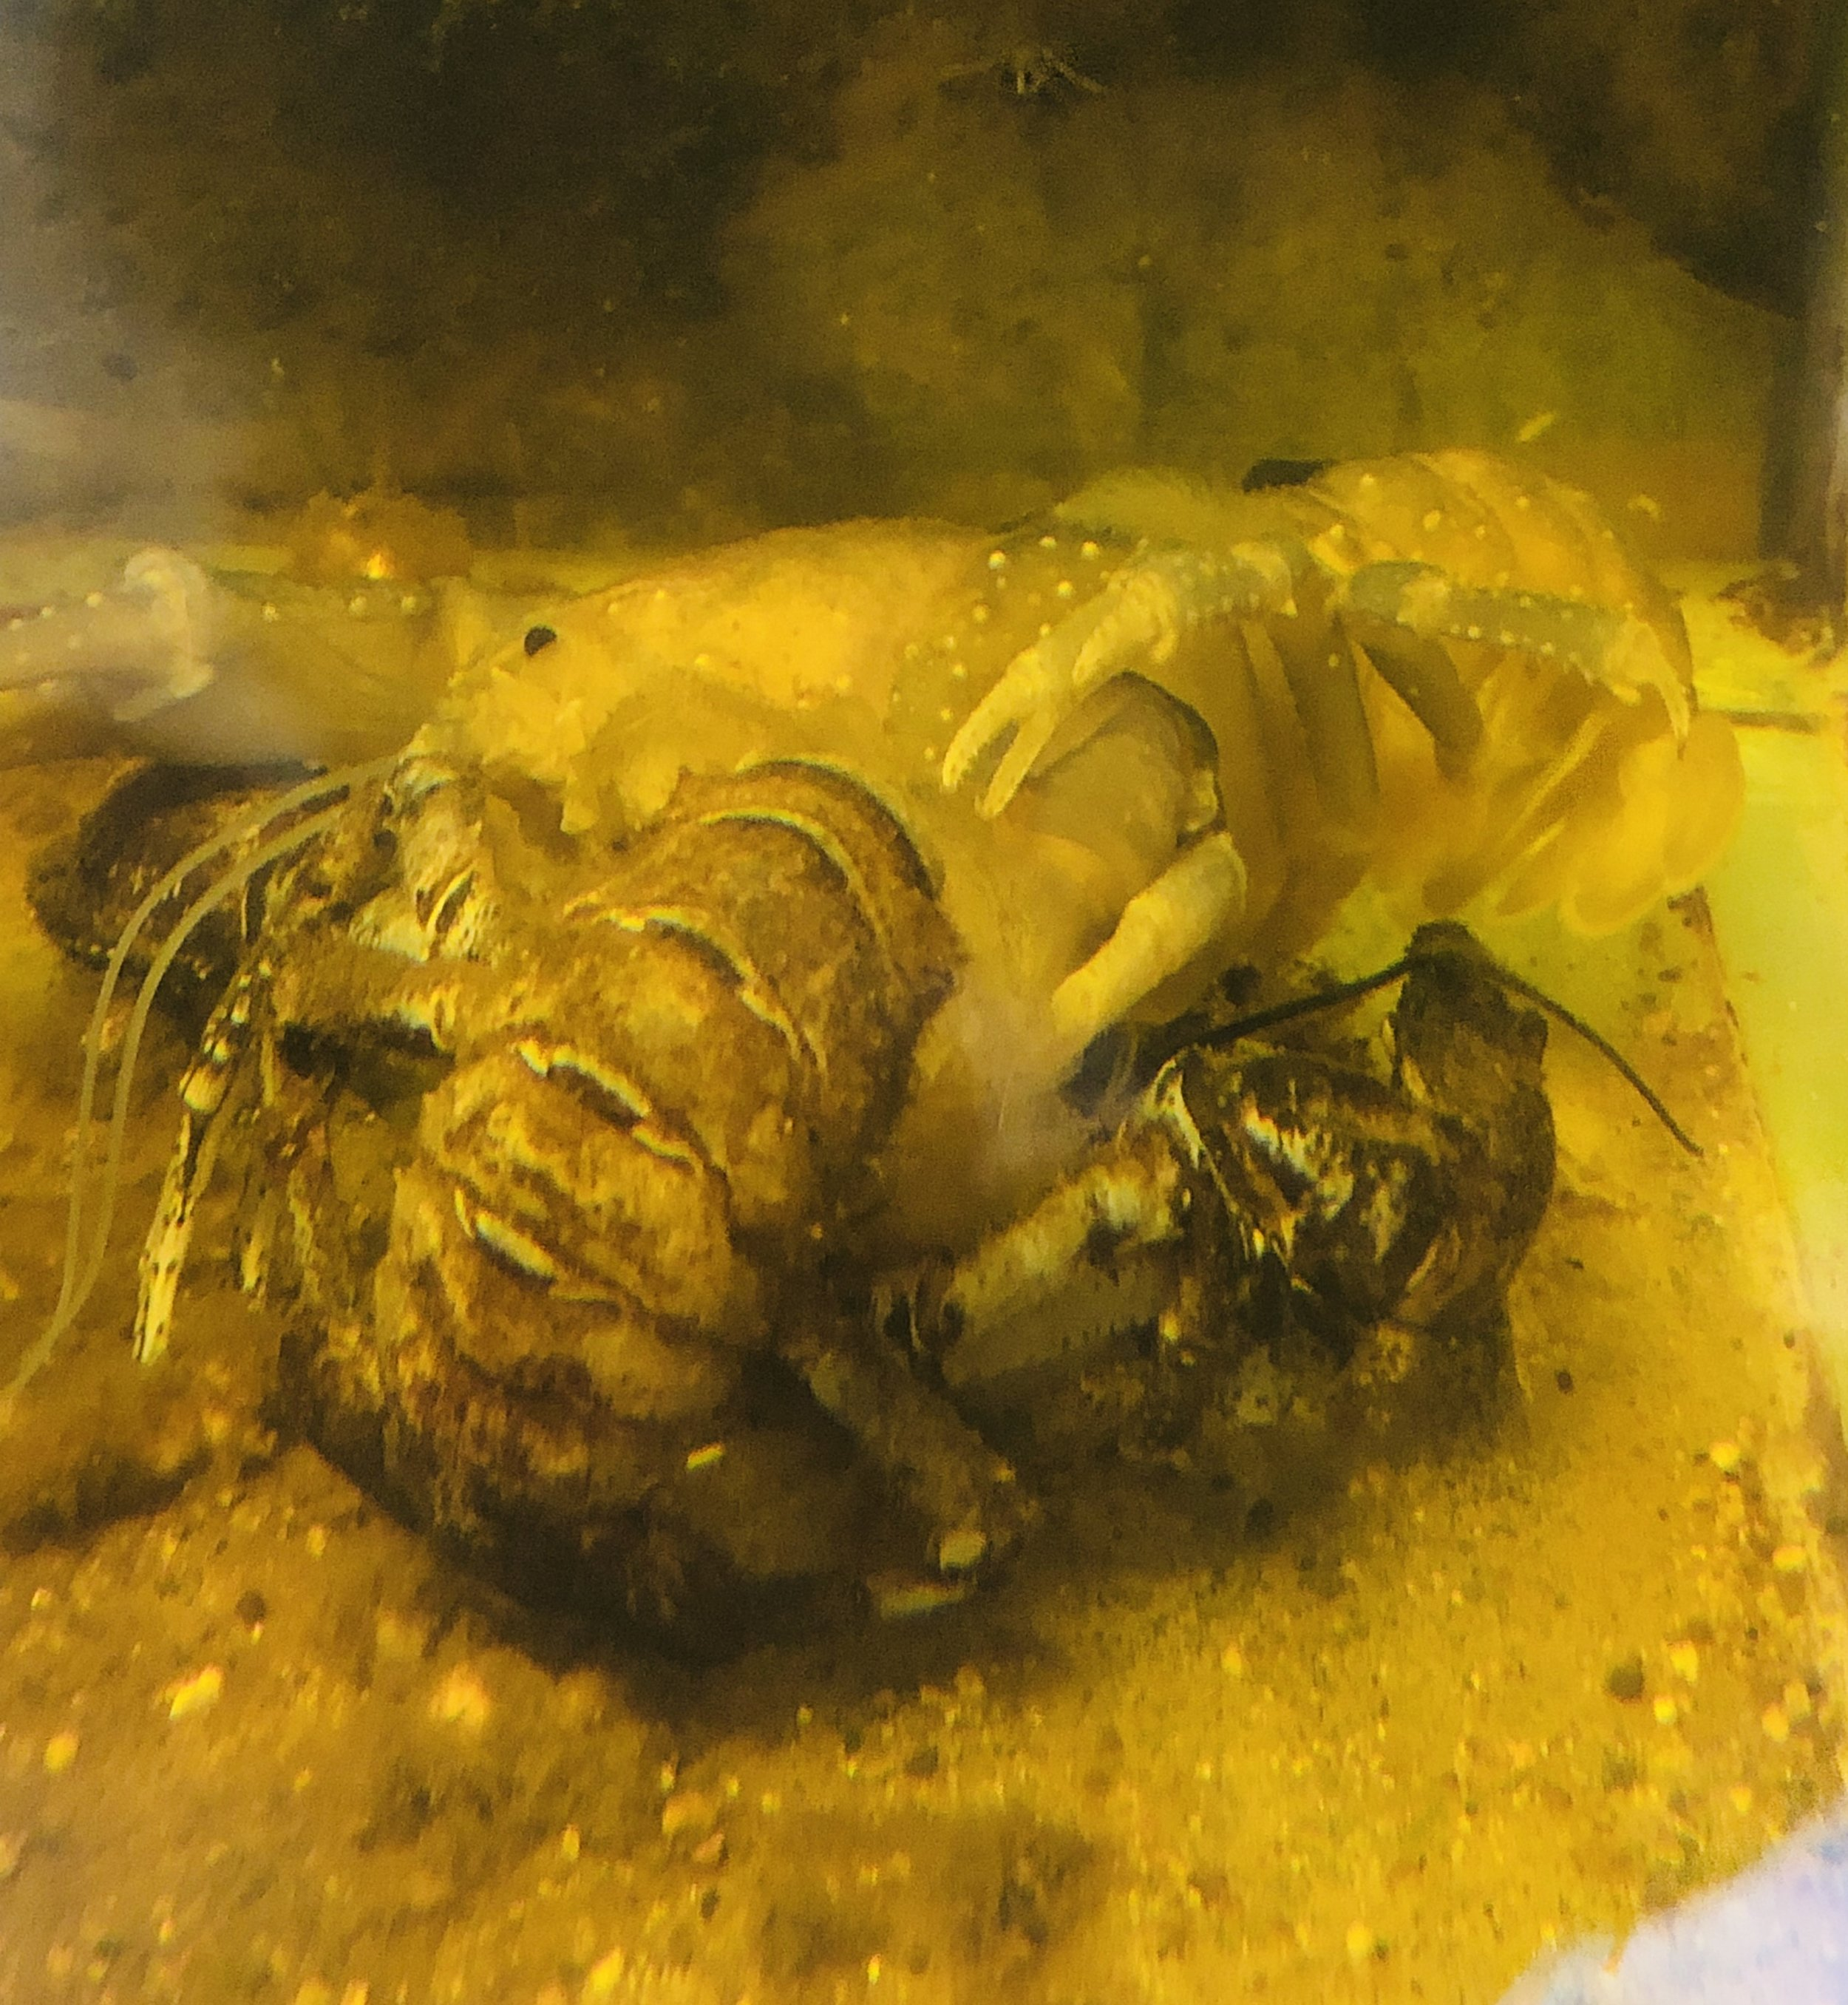 Freshwater lobster molting at Wing's Wildlife Park - Gunns Plains, Tasmania